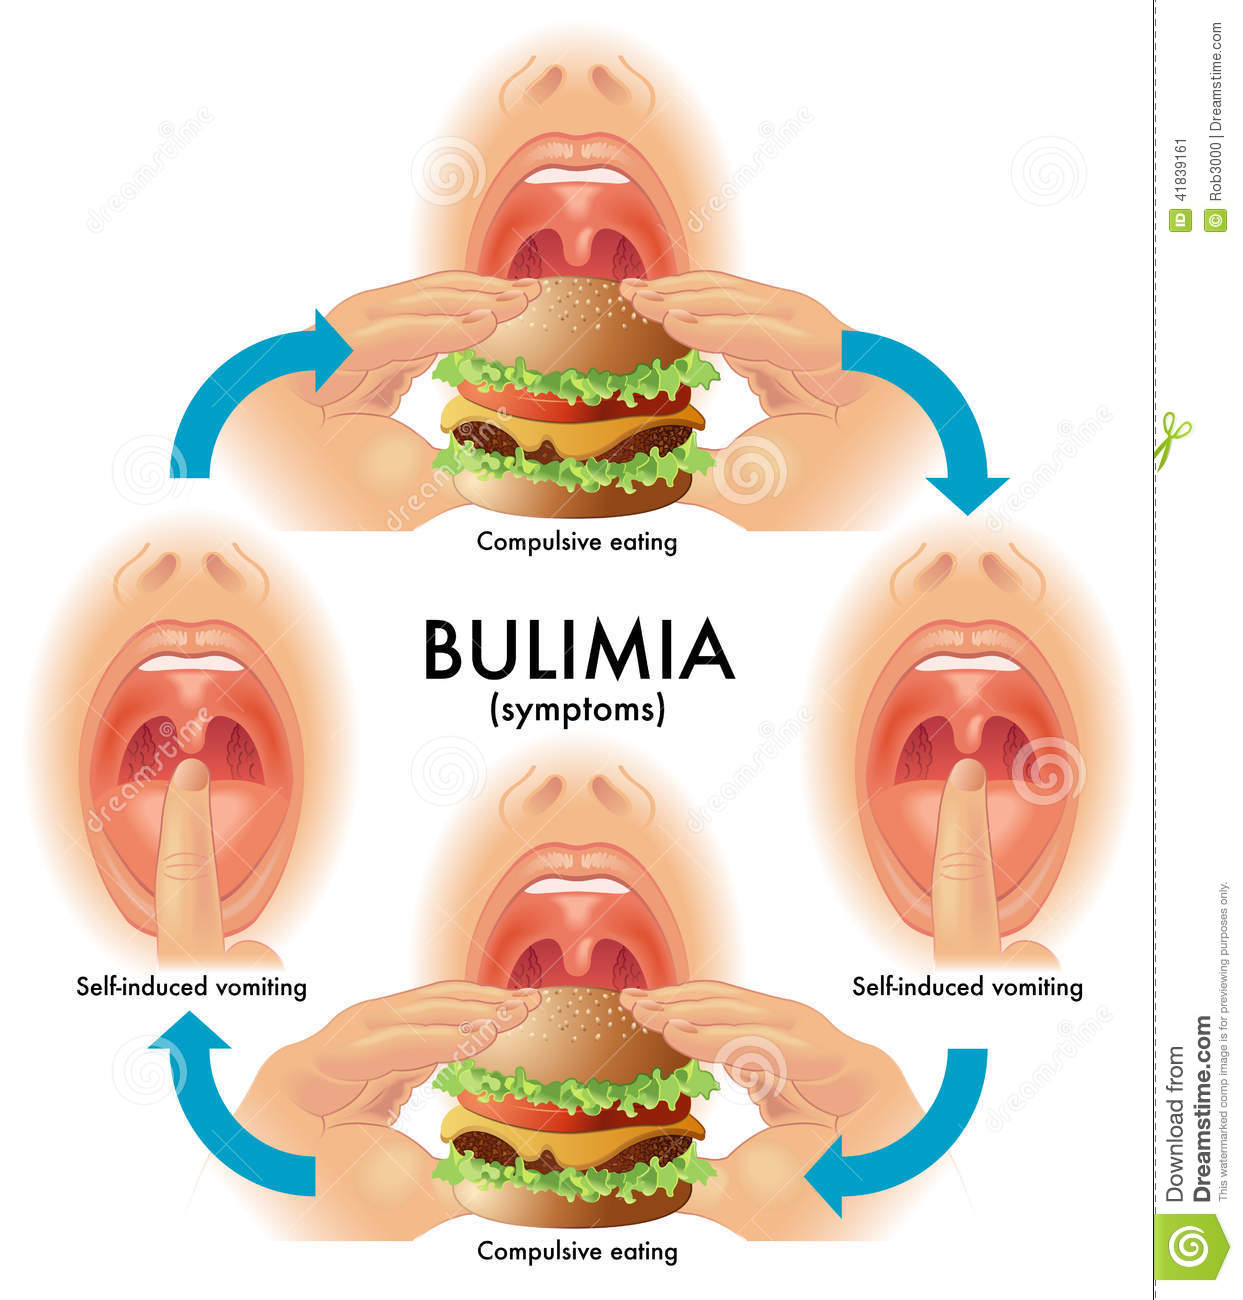 Bulimia Nervosa: What to Look for and How to Get Help – CounselingRx